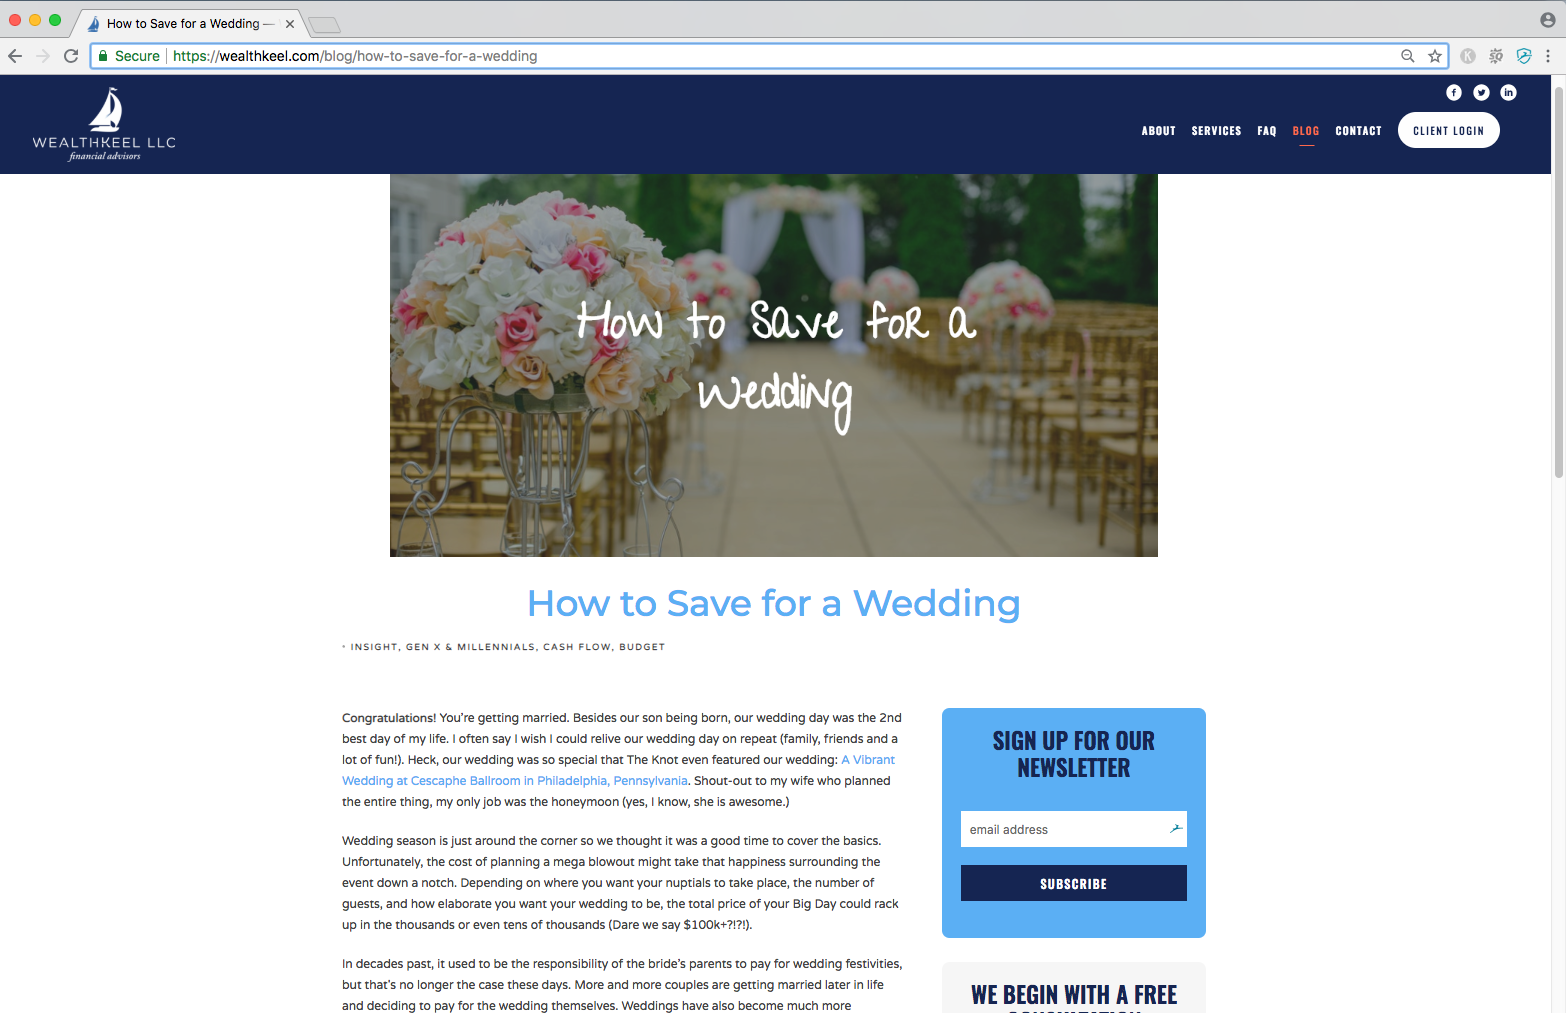 evergreen content example, how to save for a wedding